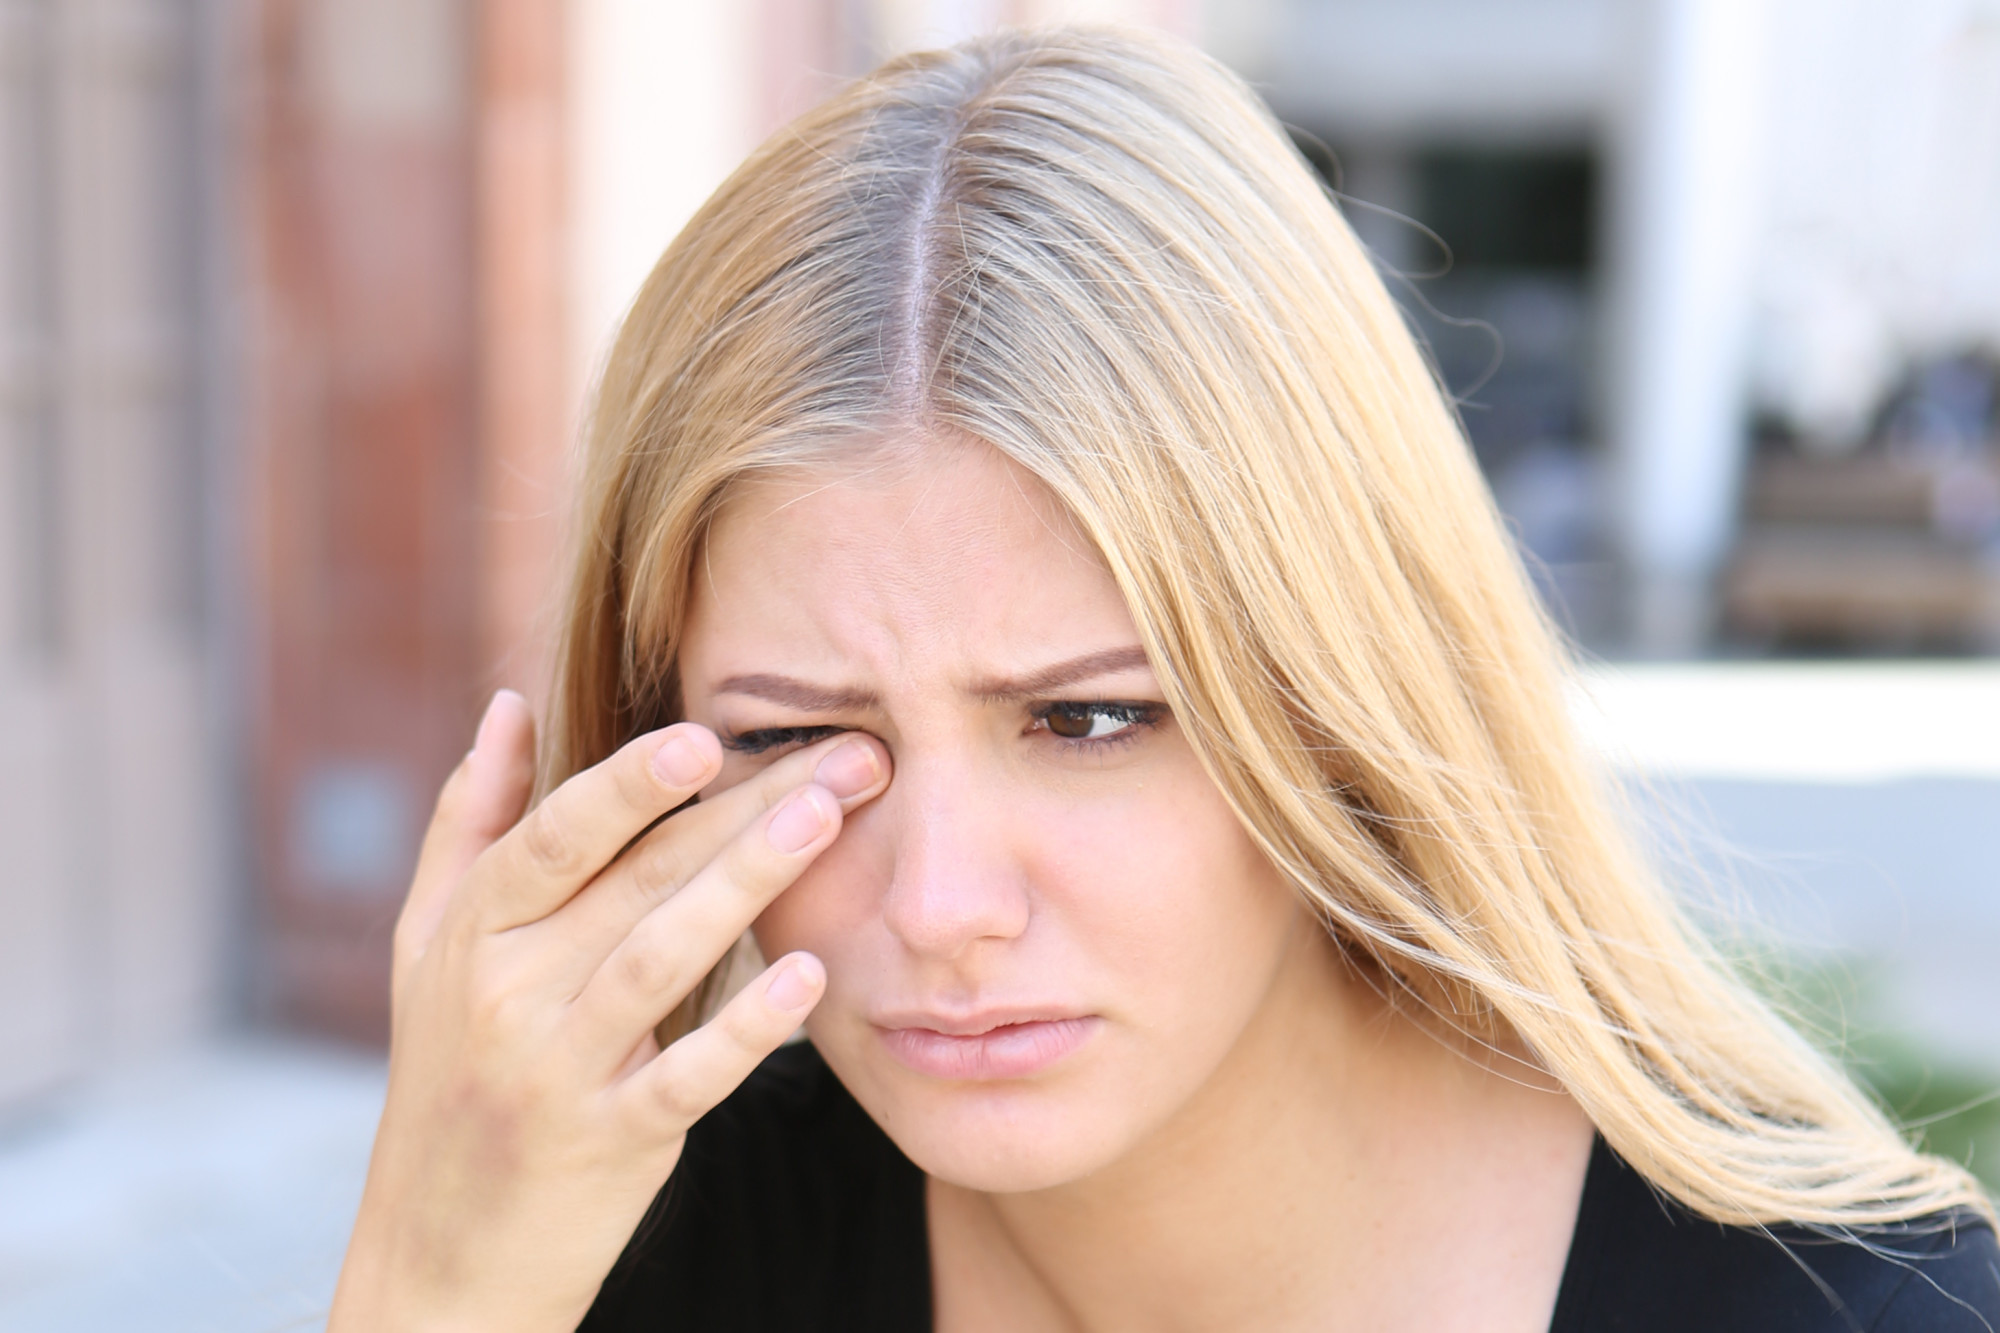 What Are Some Common Eye Problems Humans Experience?